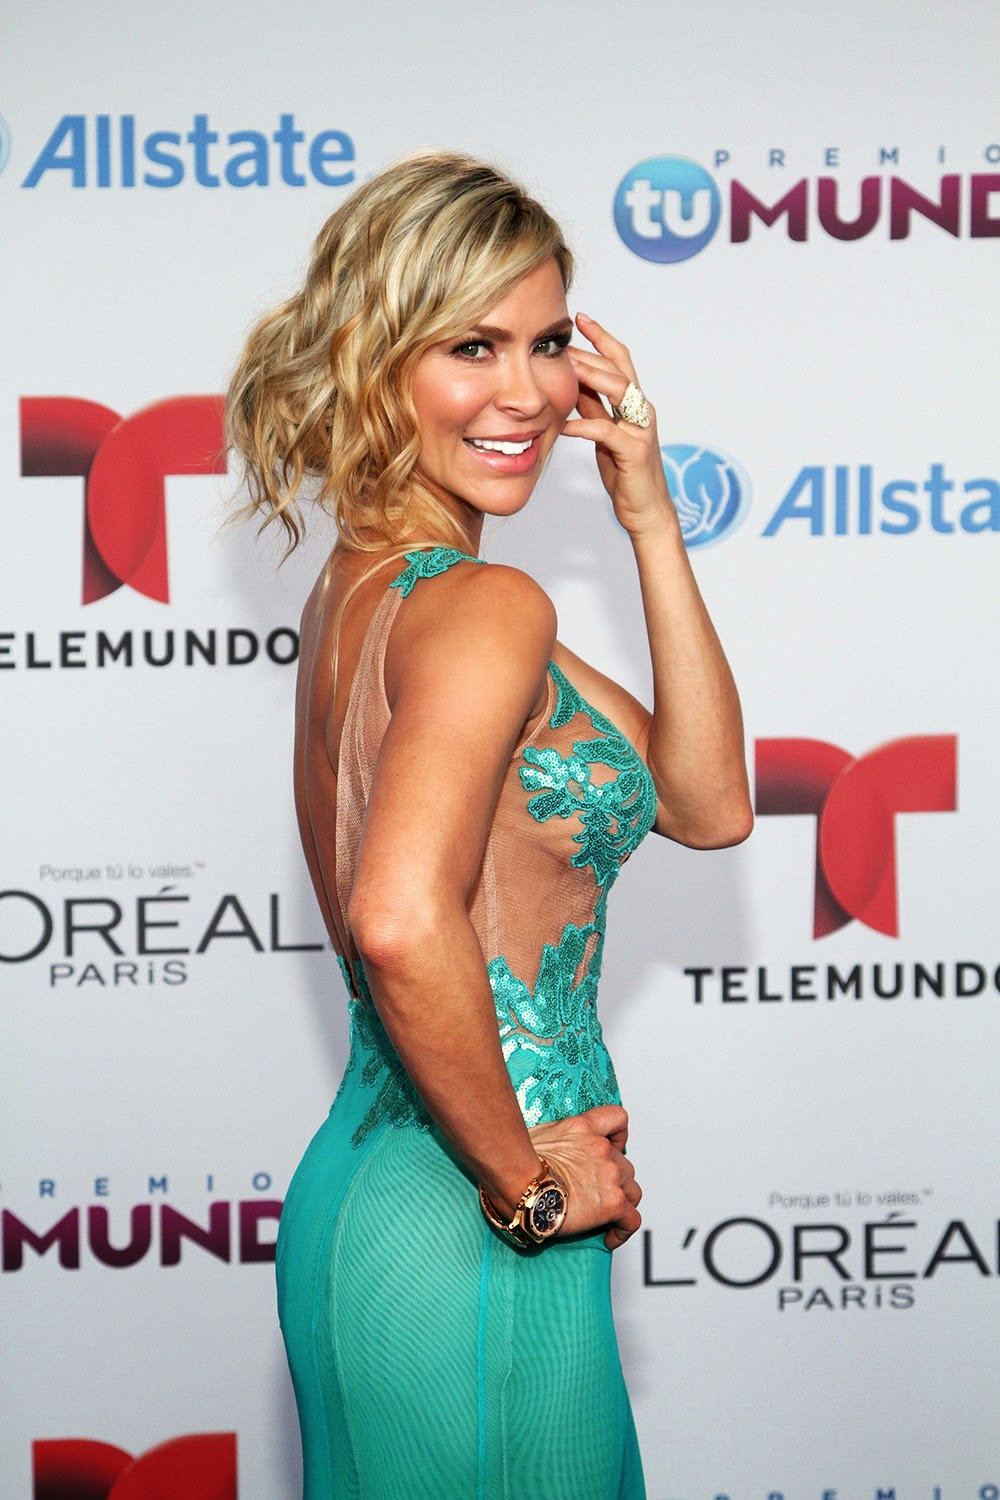 Telemundo's Premios Tu Mundo 2014: Blue carpet photos